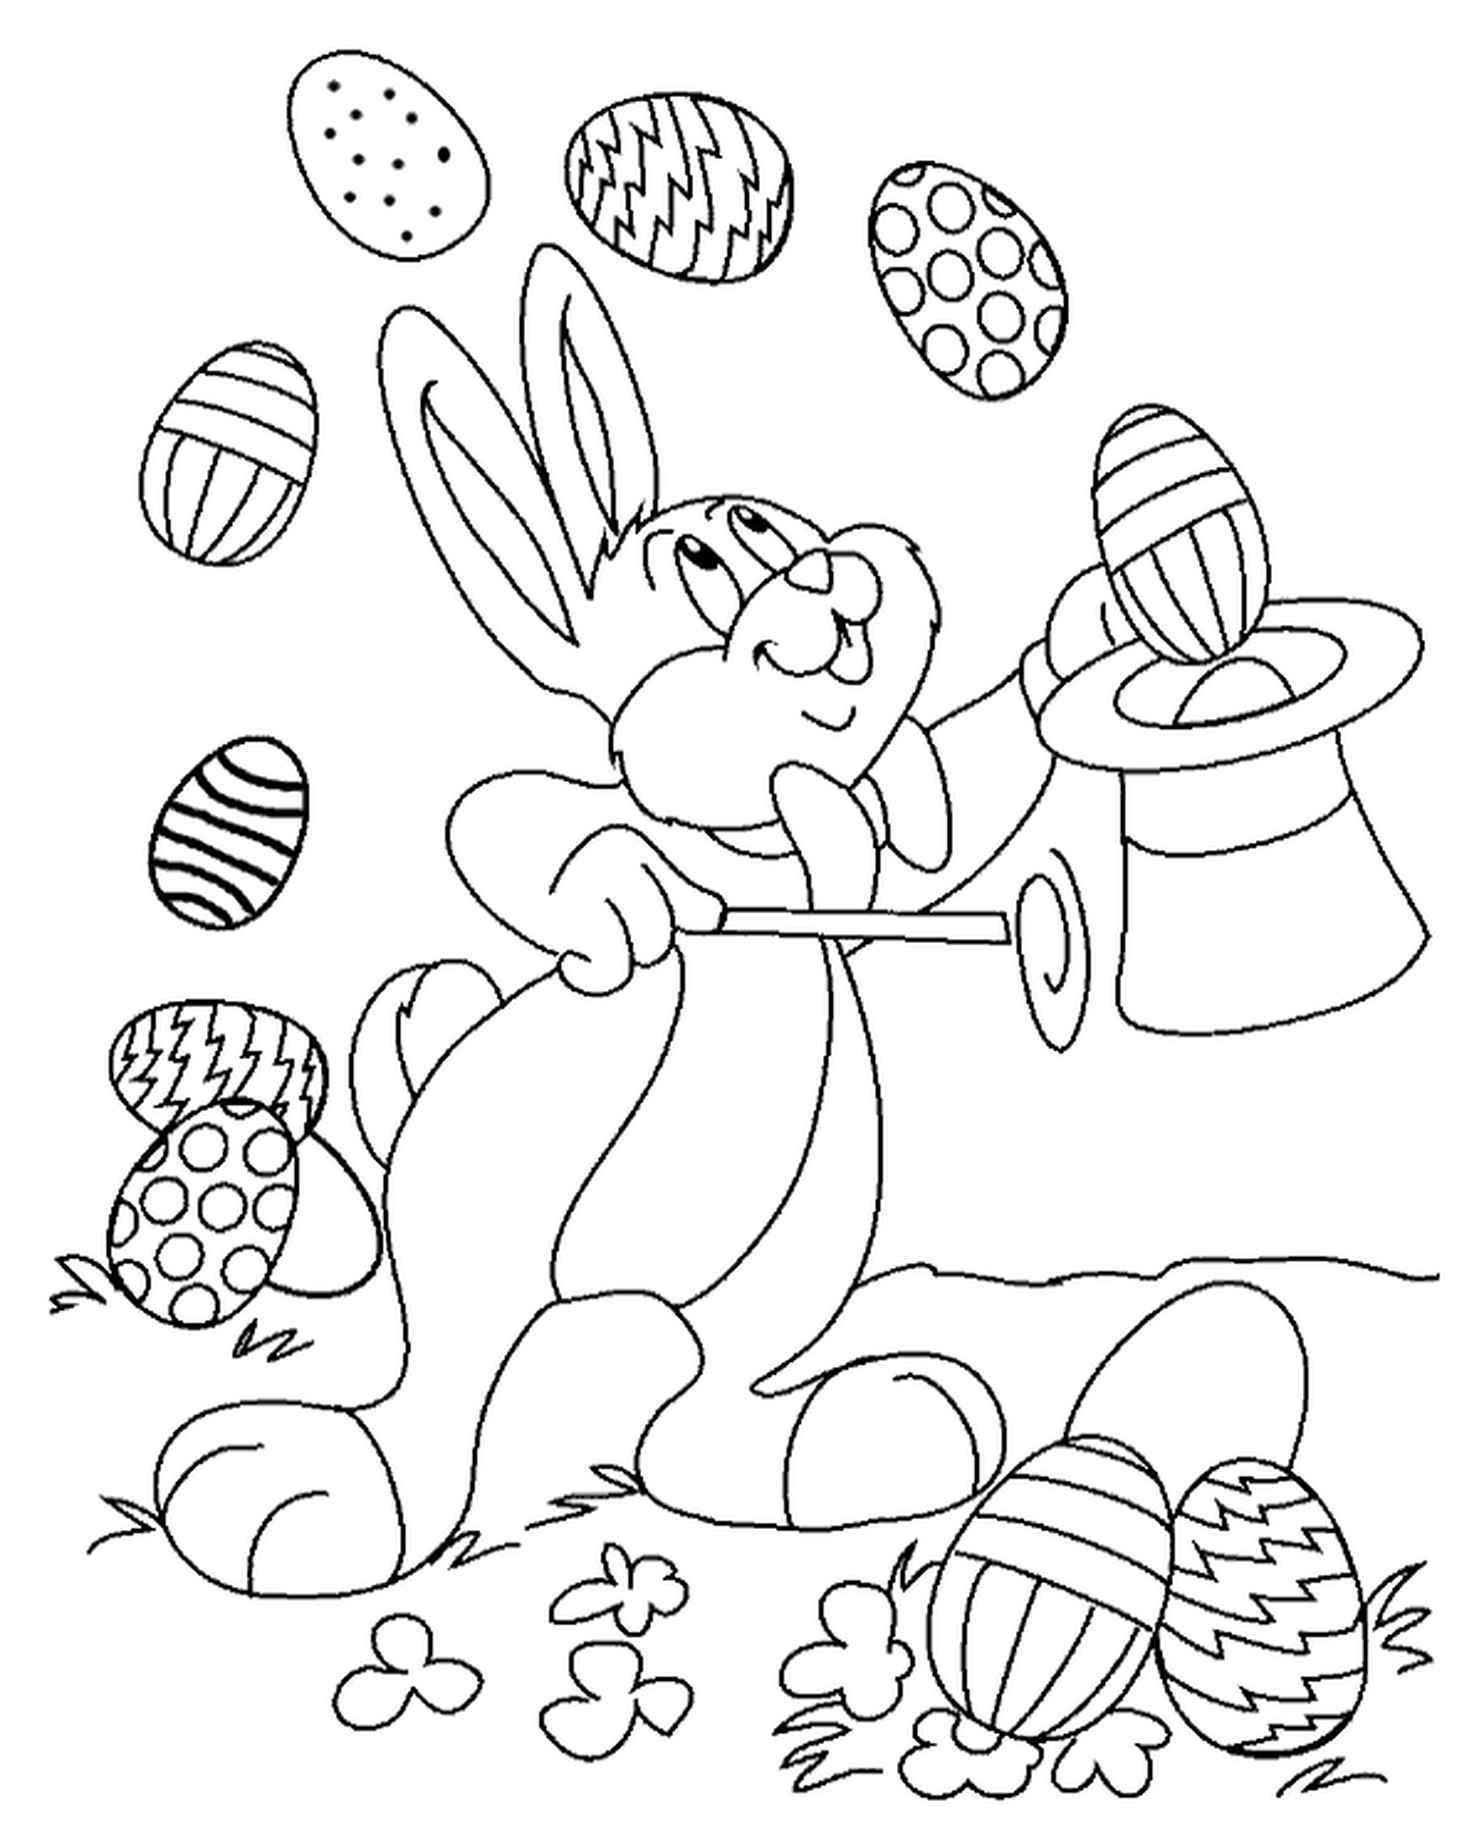 Easter Bunny Showing Magic Tricks With Easter Eggs Coloring Sheet